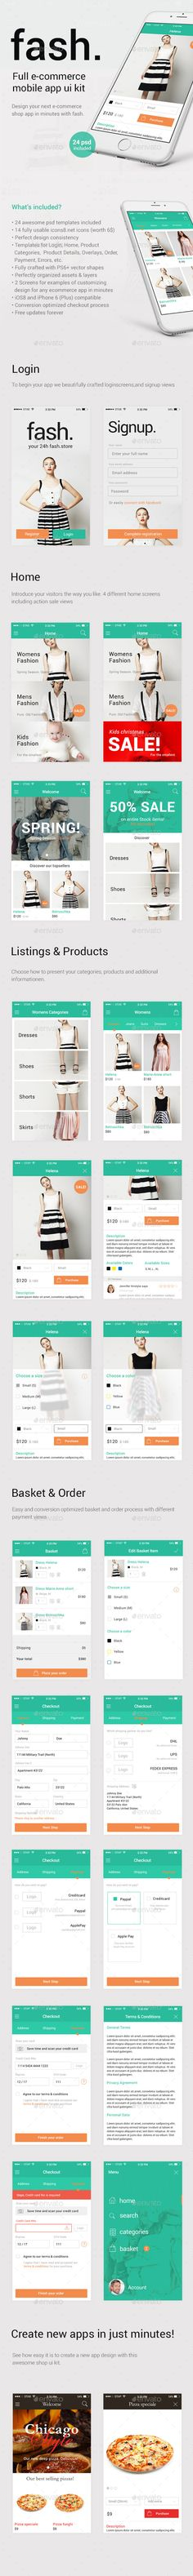 Fash – A Mobile E-Commerce Shop UI Design Kit (User Interfaces)